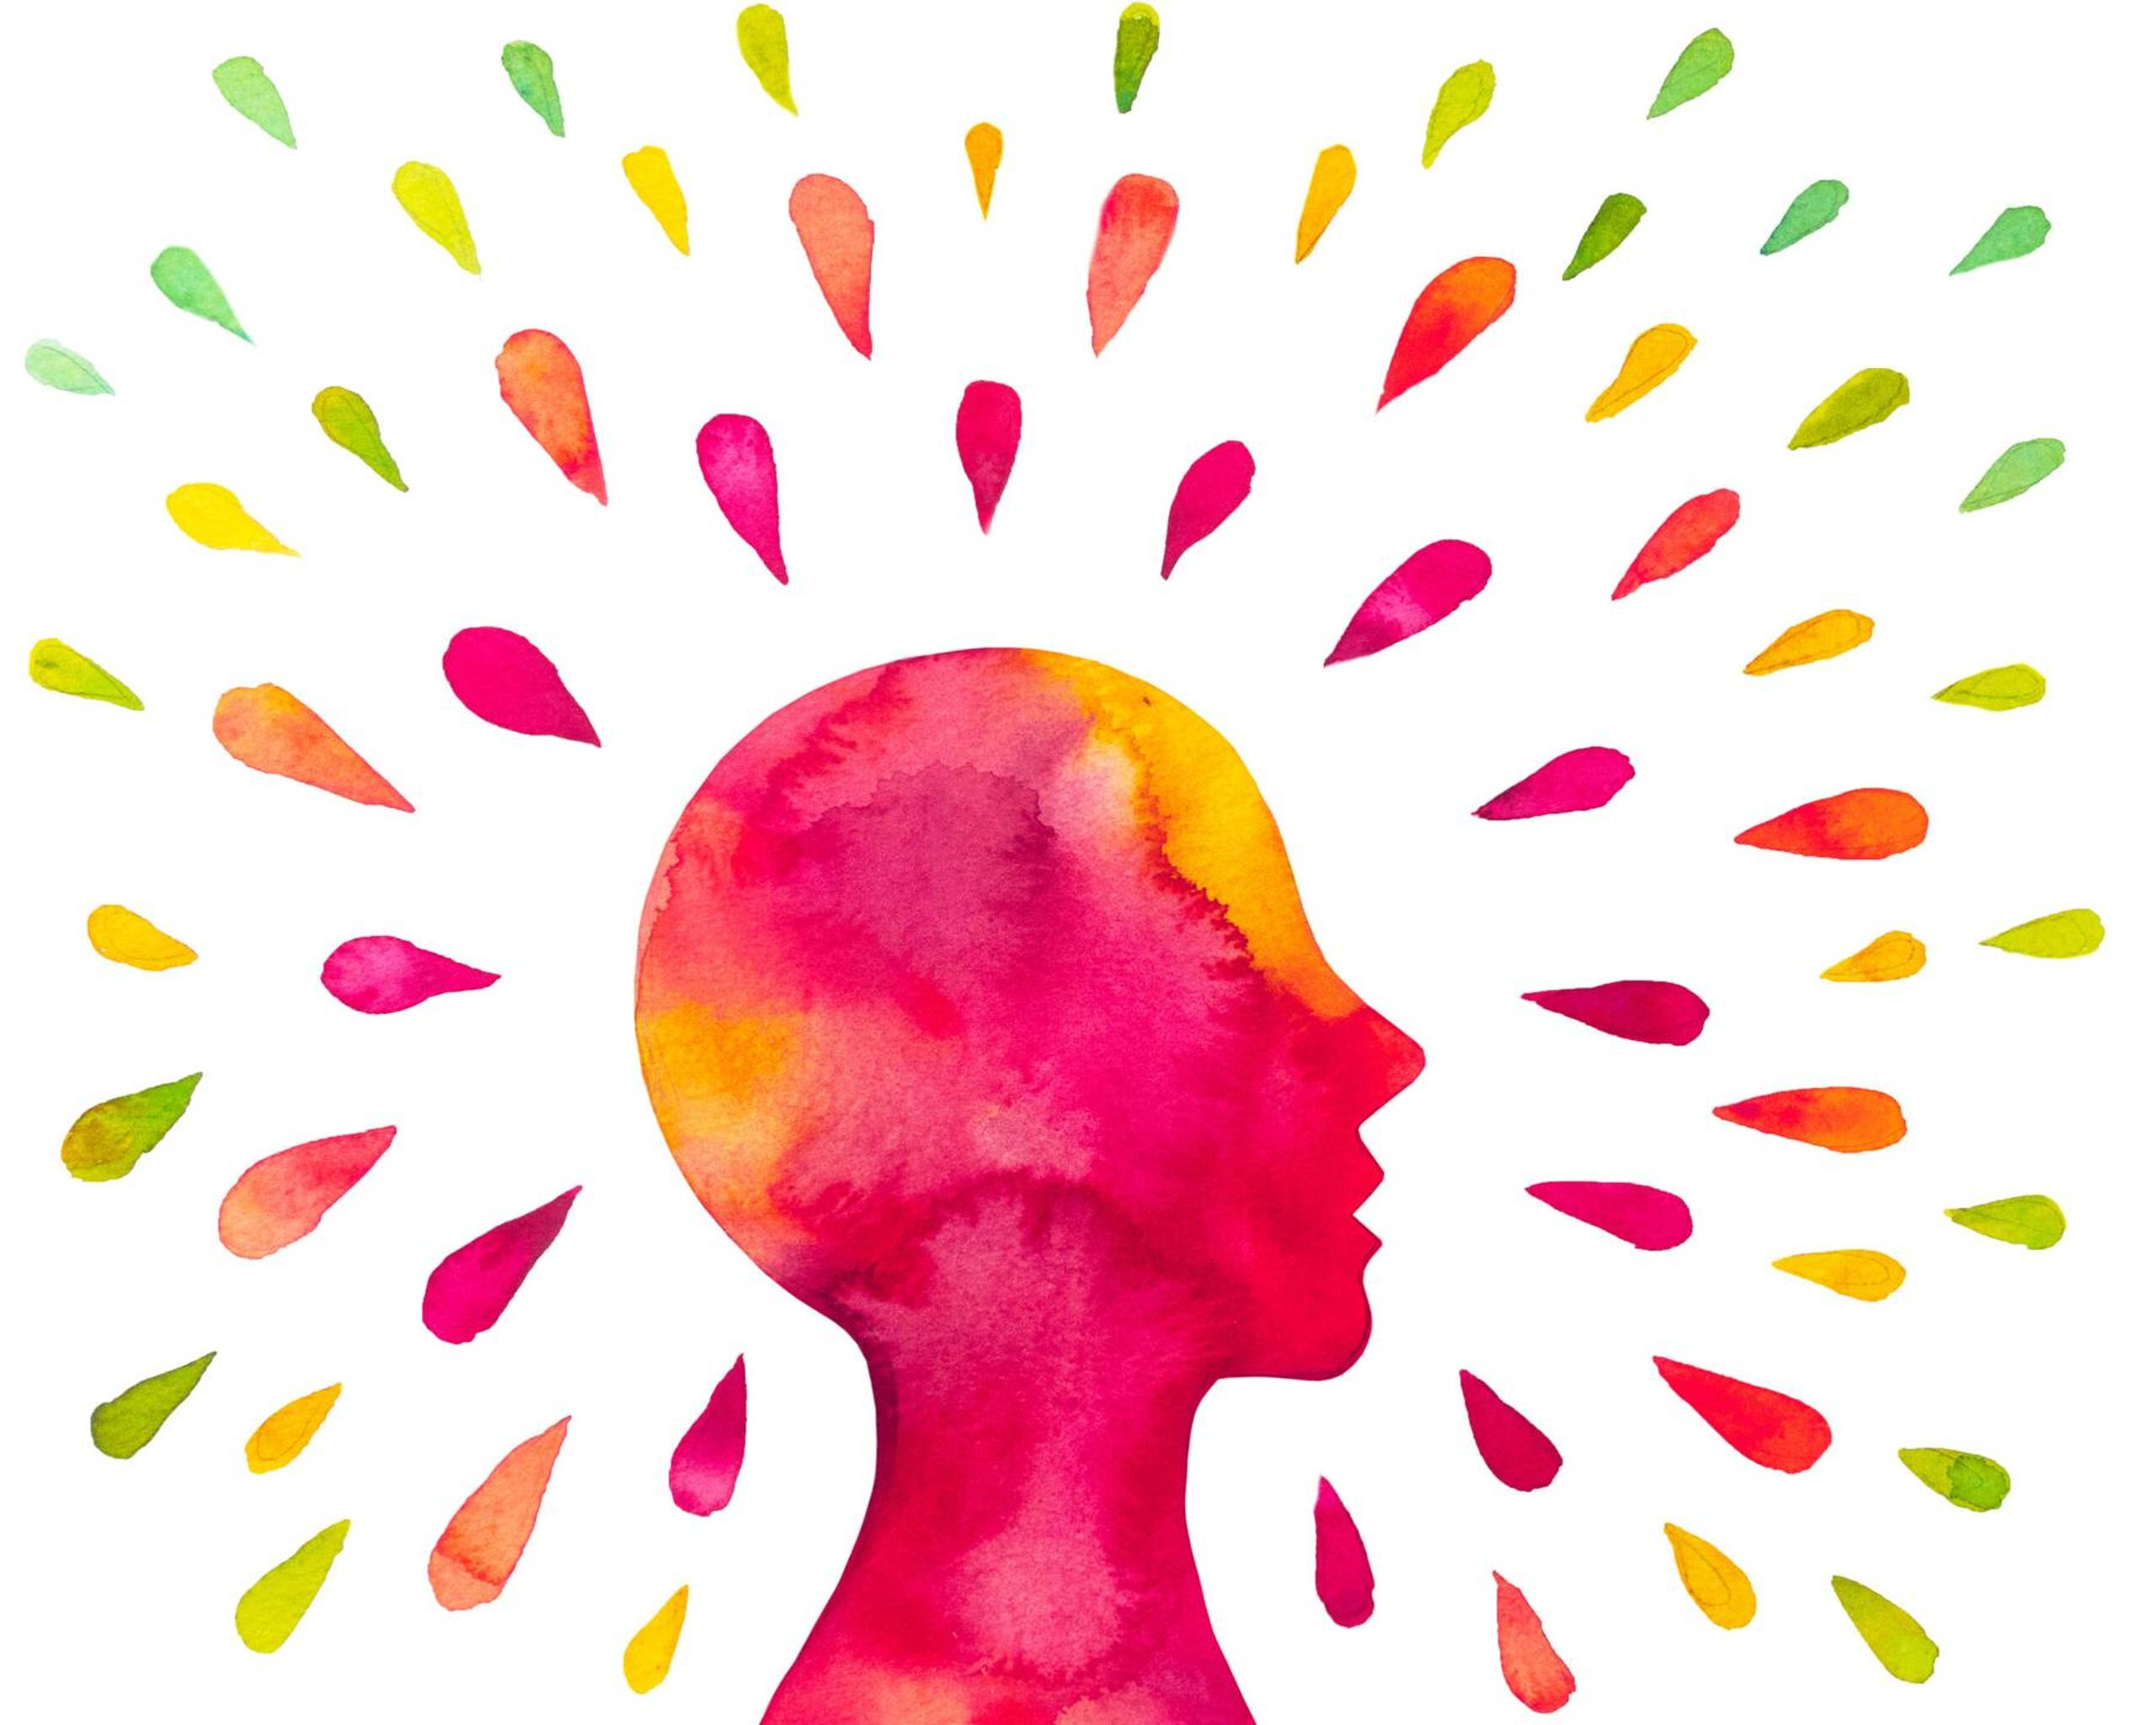 Illustration of a head and neck surrounded by red, orange, yellow and green drops, black youth, mental health, rewire